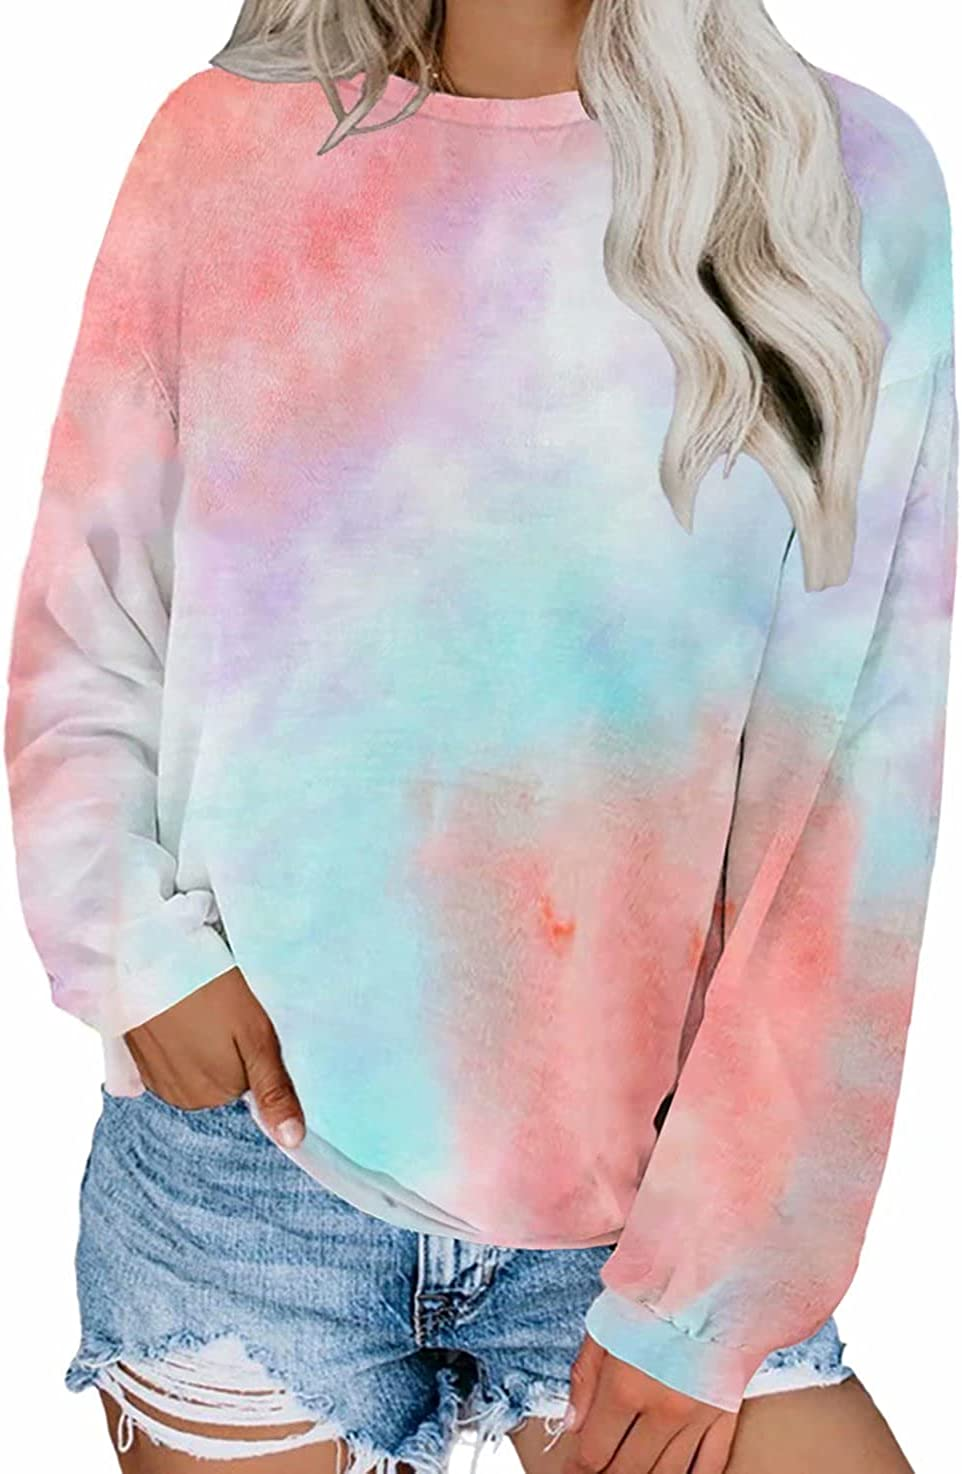 Dokotoo Womens Fall Ladies Loose Fit Crewneck Long Sleeve Tops Casual Tie Dye Plain Tops Blouses Fashion T-Shirts Thin Pullover Sweatshirt Blue X-Large